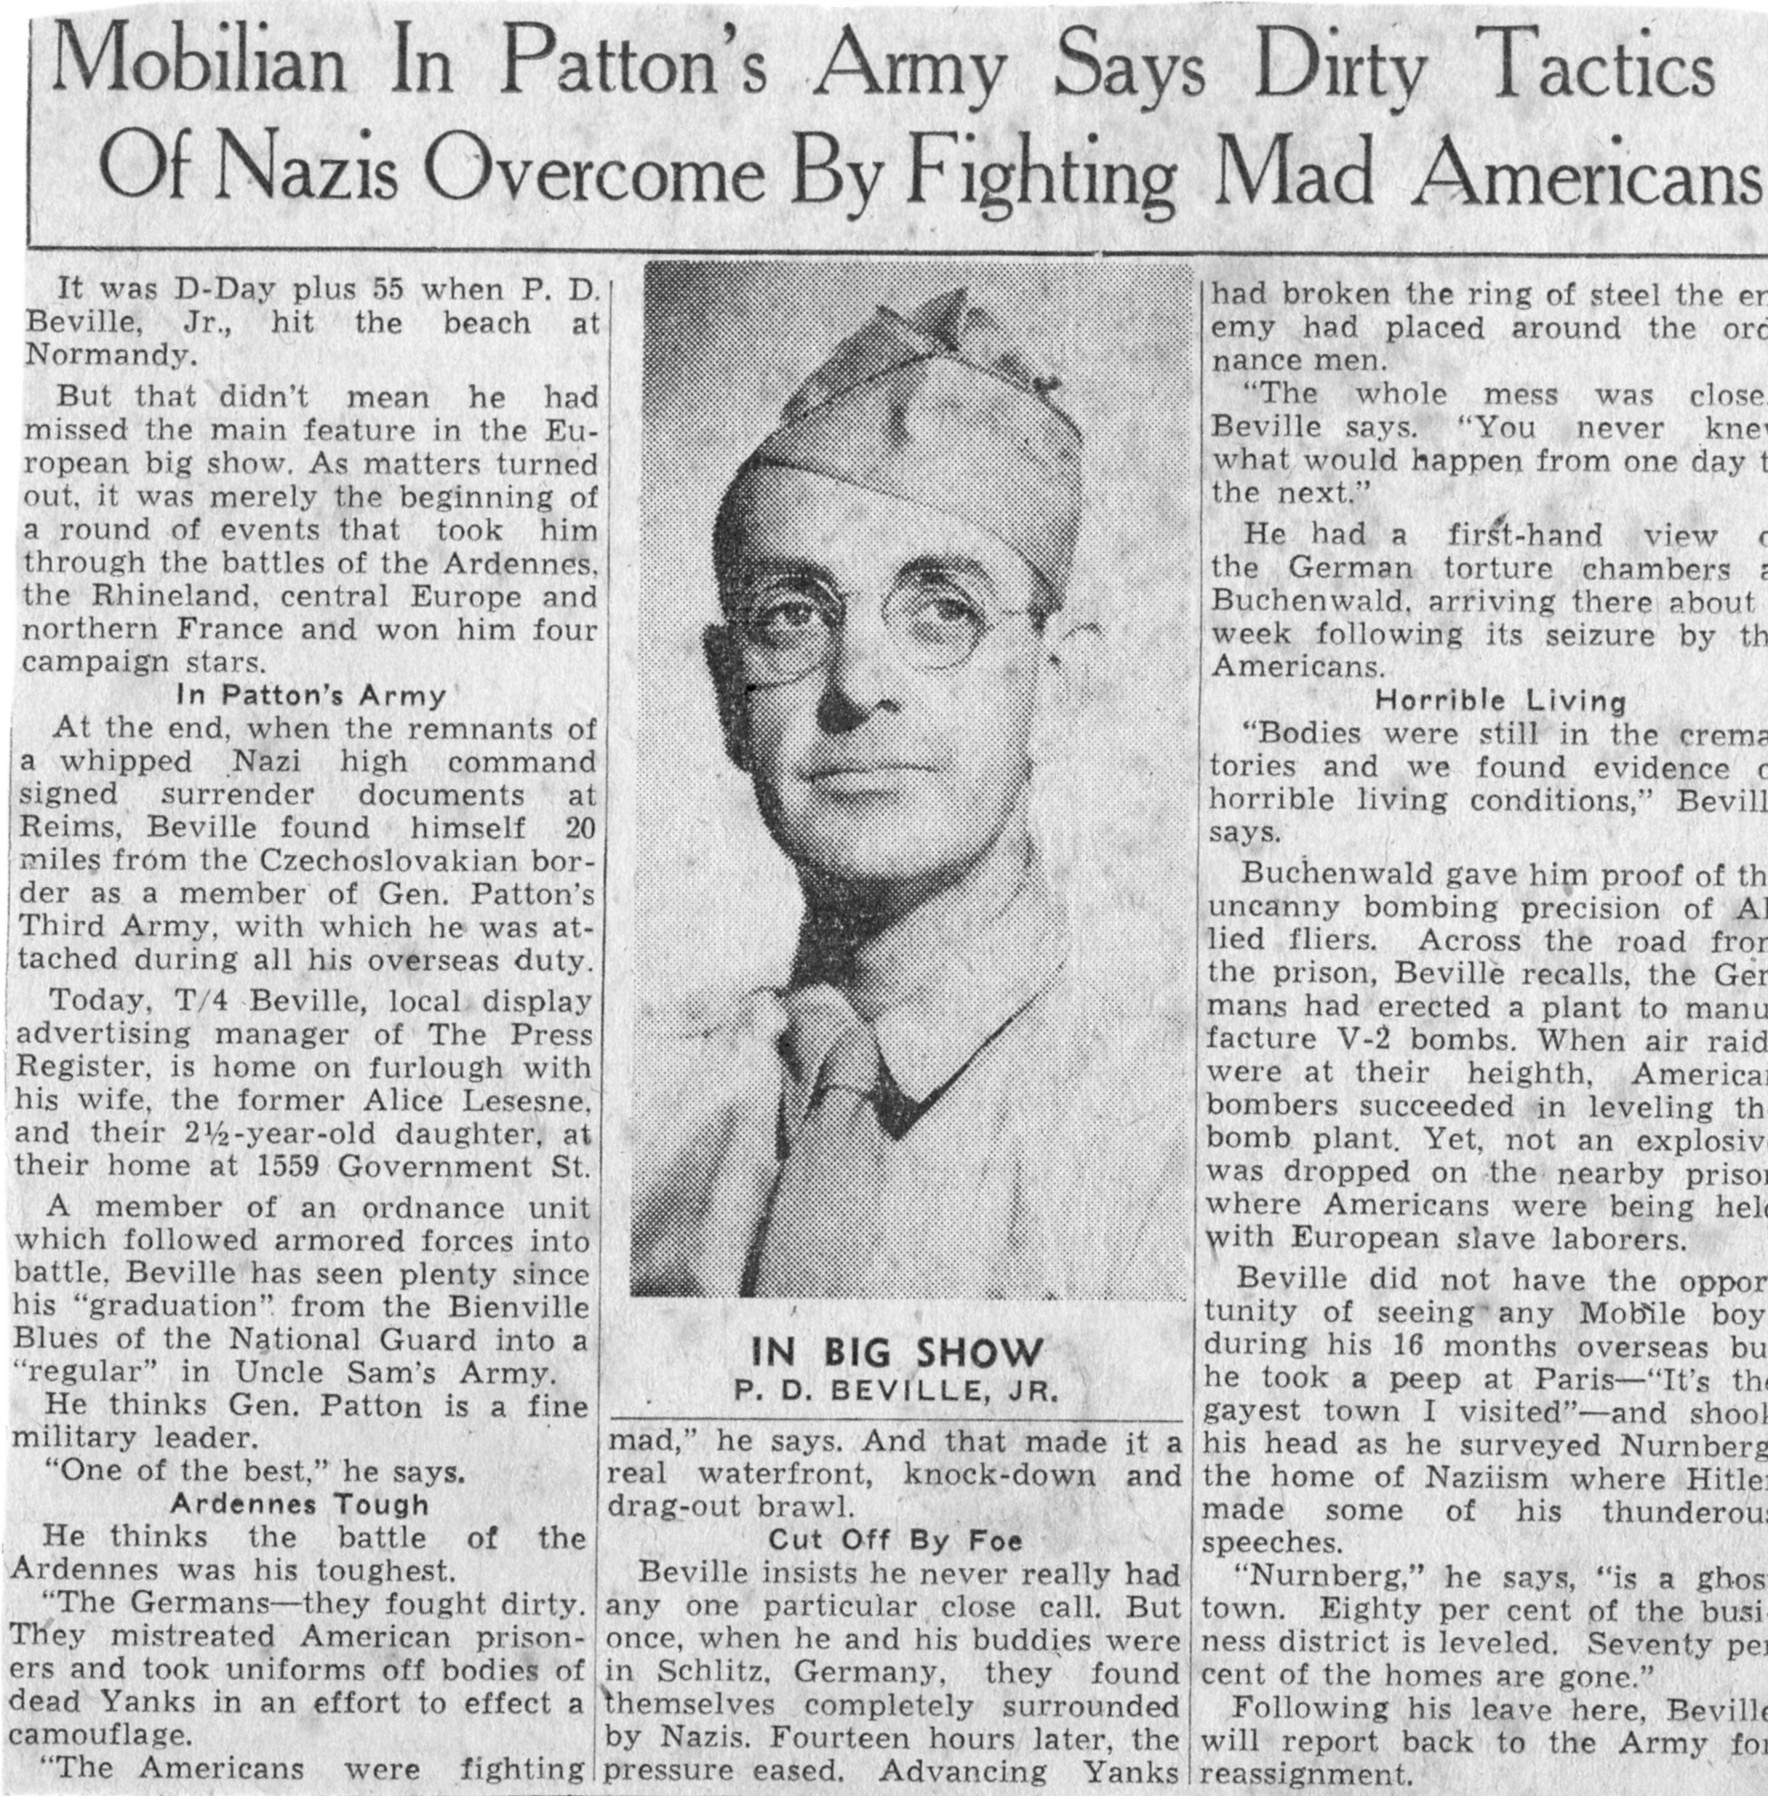 The following is a 1945 article about Phares Beville serving in World War II. It is a copy of a newspaper clipping provided by his daughter Linda Arnold.